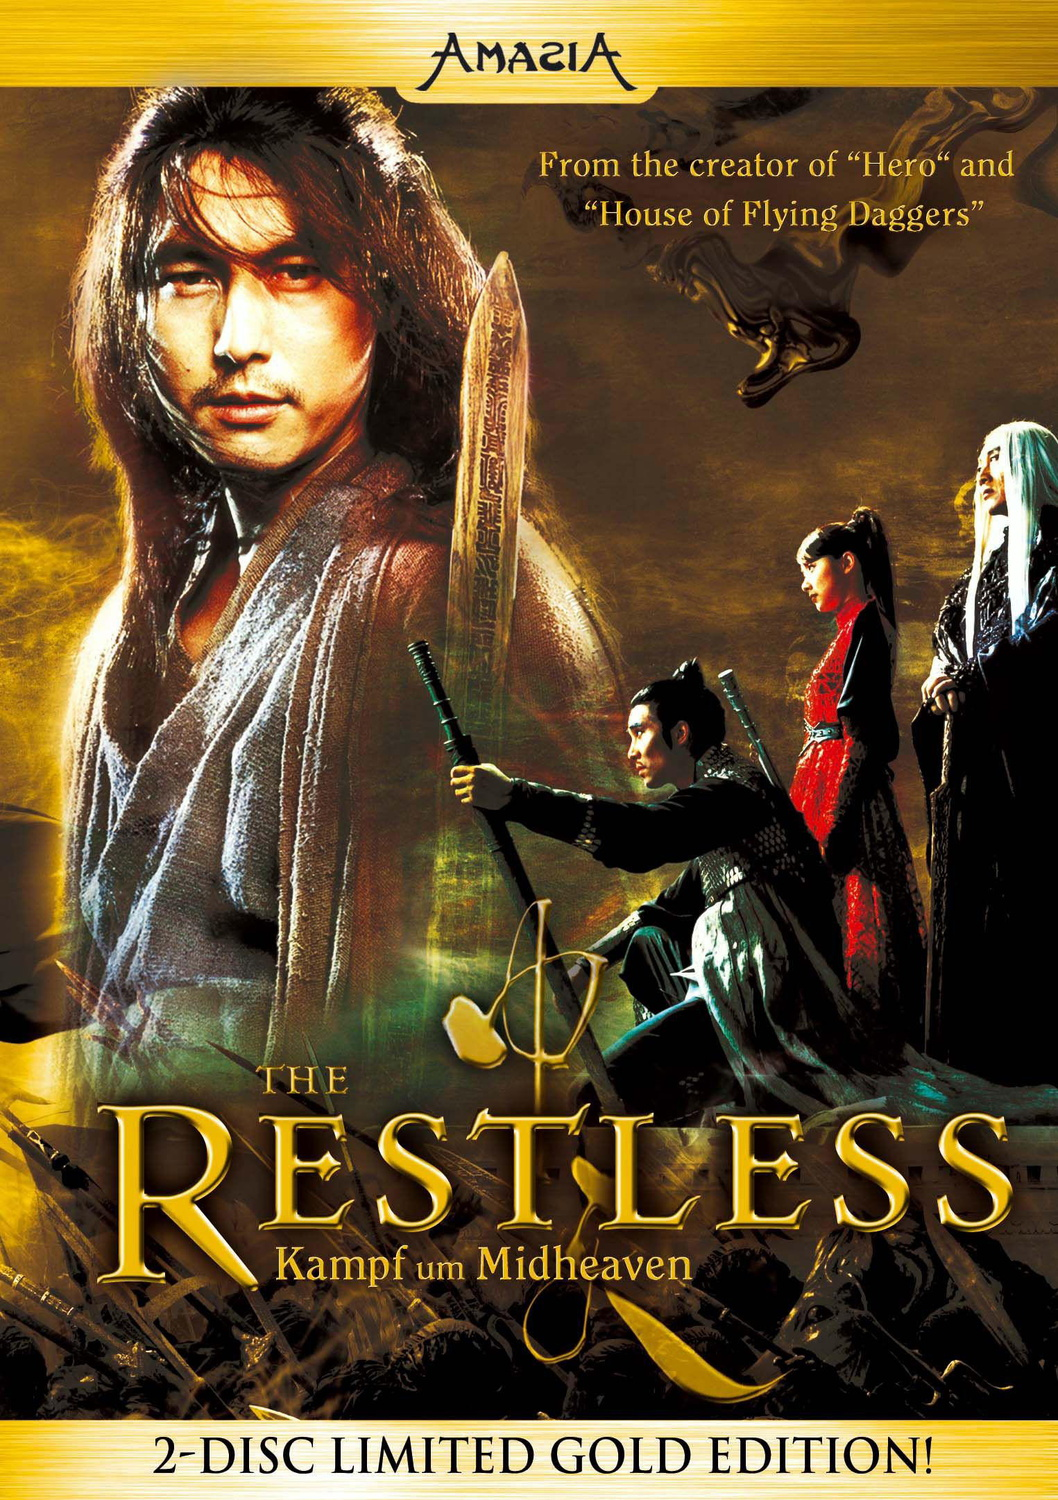 The Restless - Limited Gold Edition